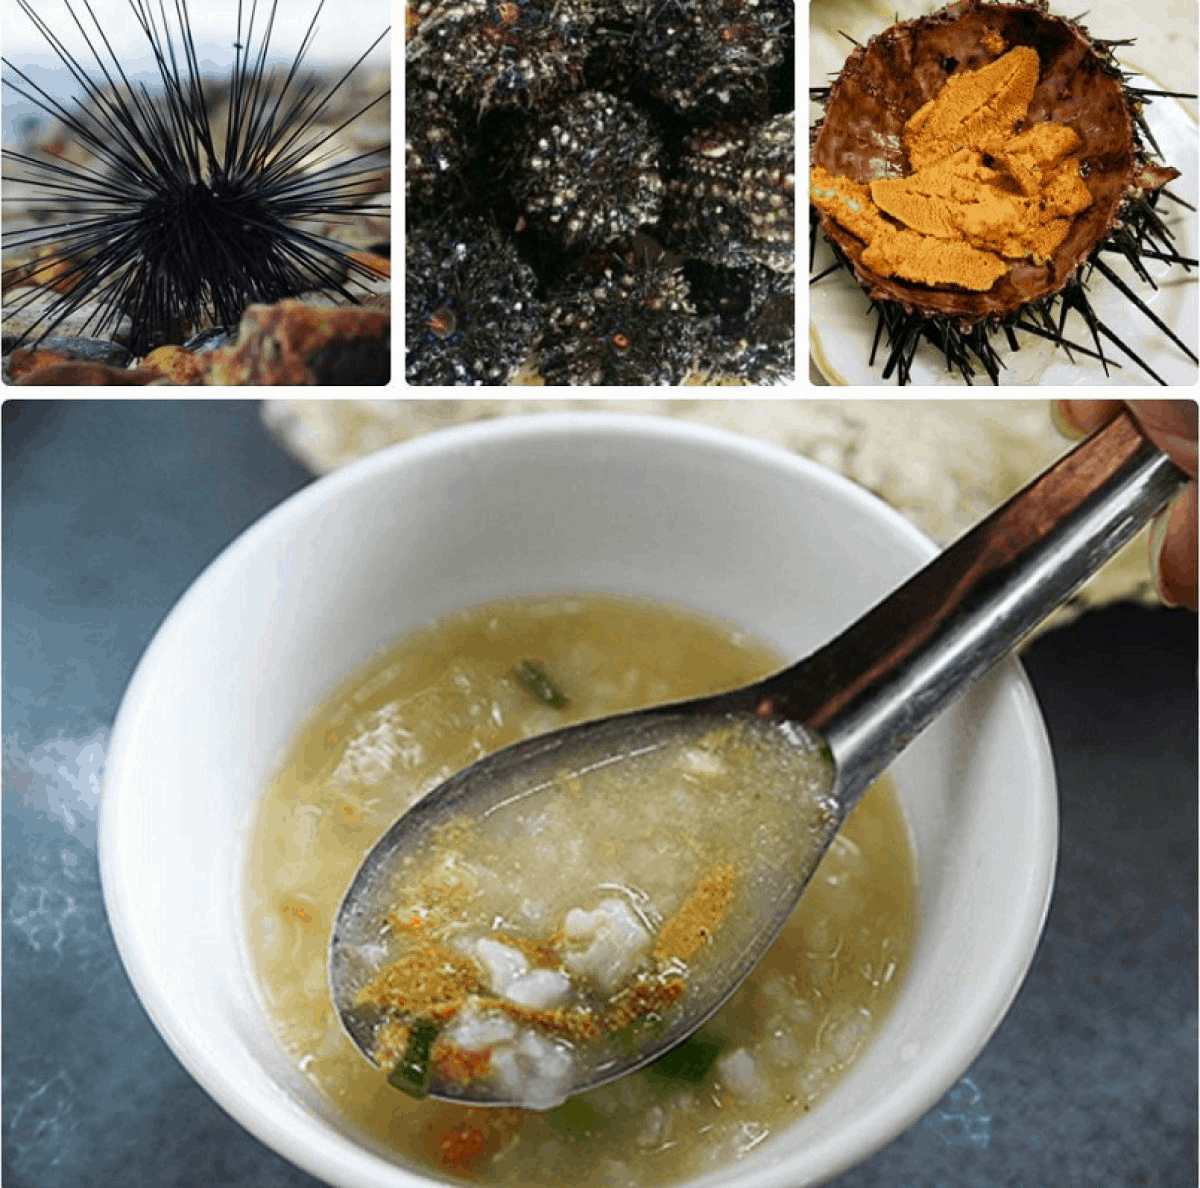 Southern Phu Quoc sea urchin porridge - a unique and strange dish (collectibles)